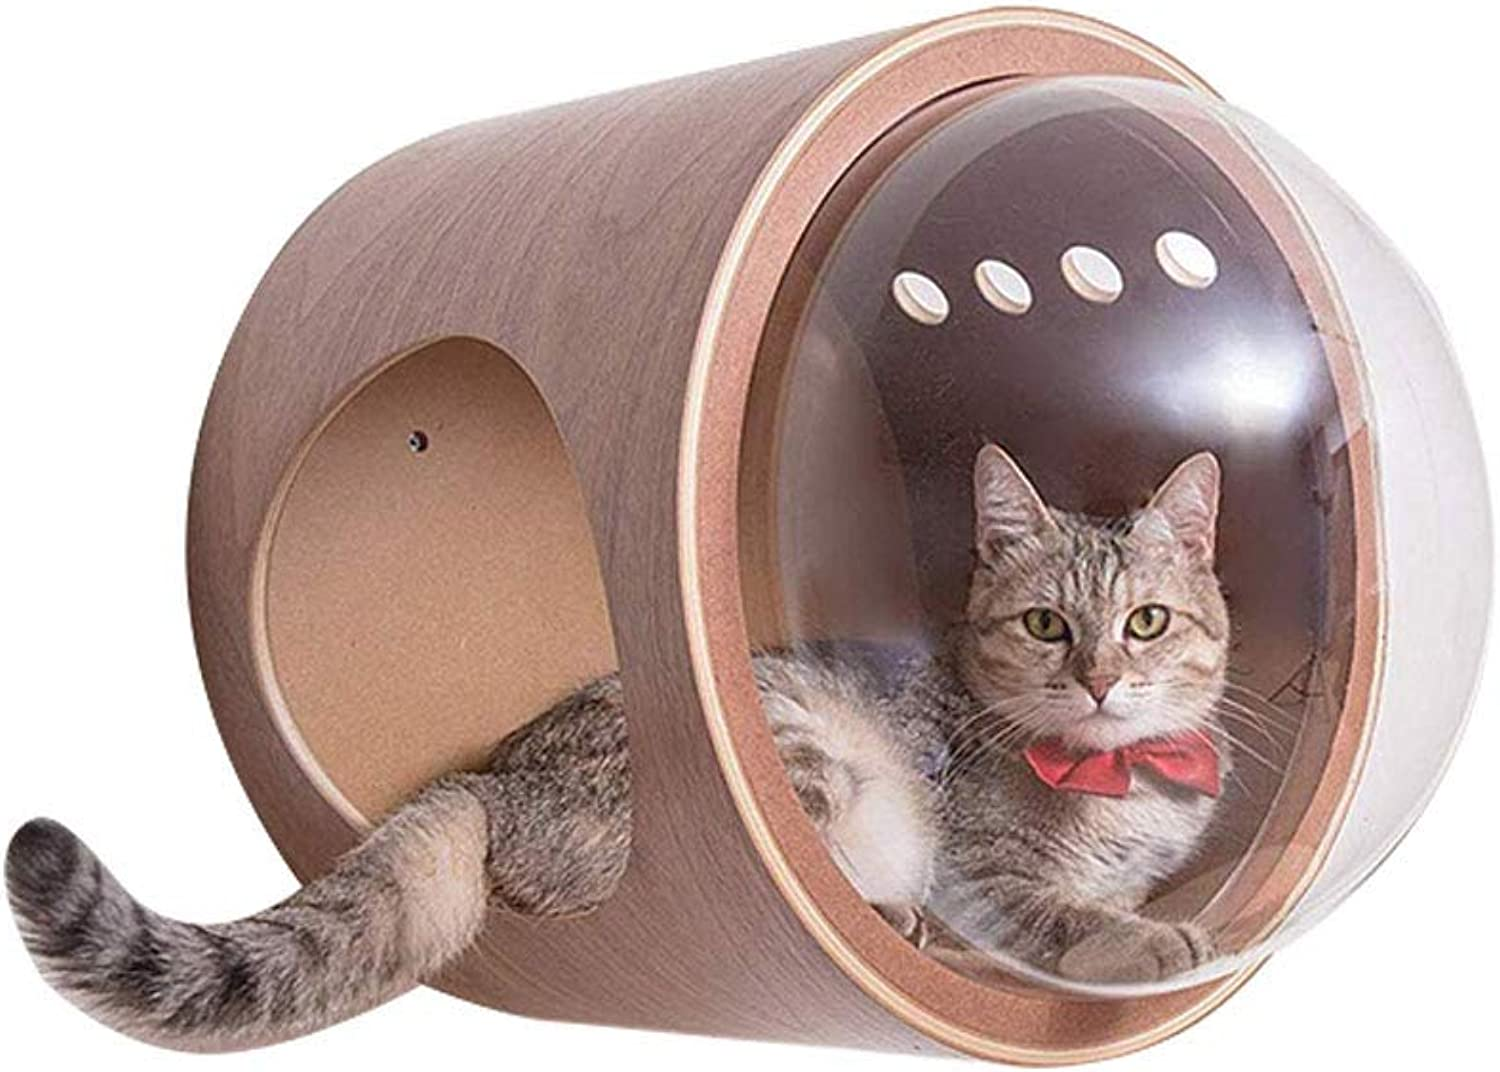 DYYTR Cat Space Capsule Cat Litter Transparent Window Cat House Wooden Cat Furniture Can Be Hung On The Wall Cat House Climbing Frame